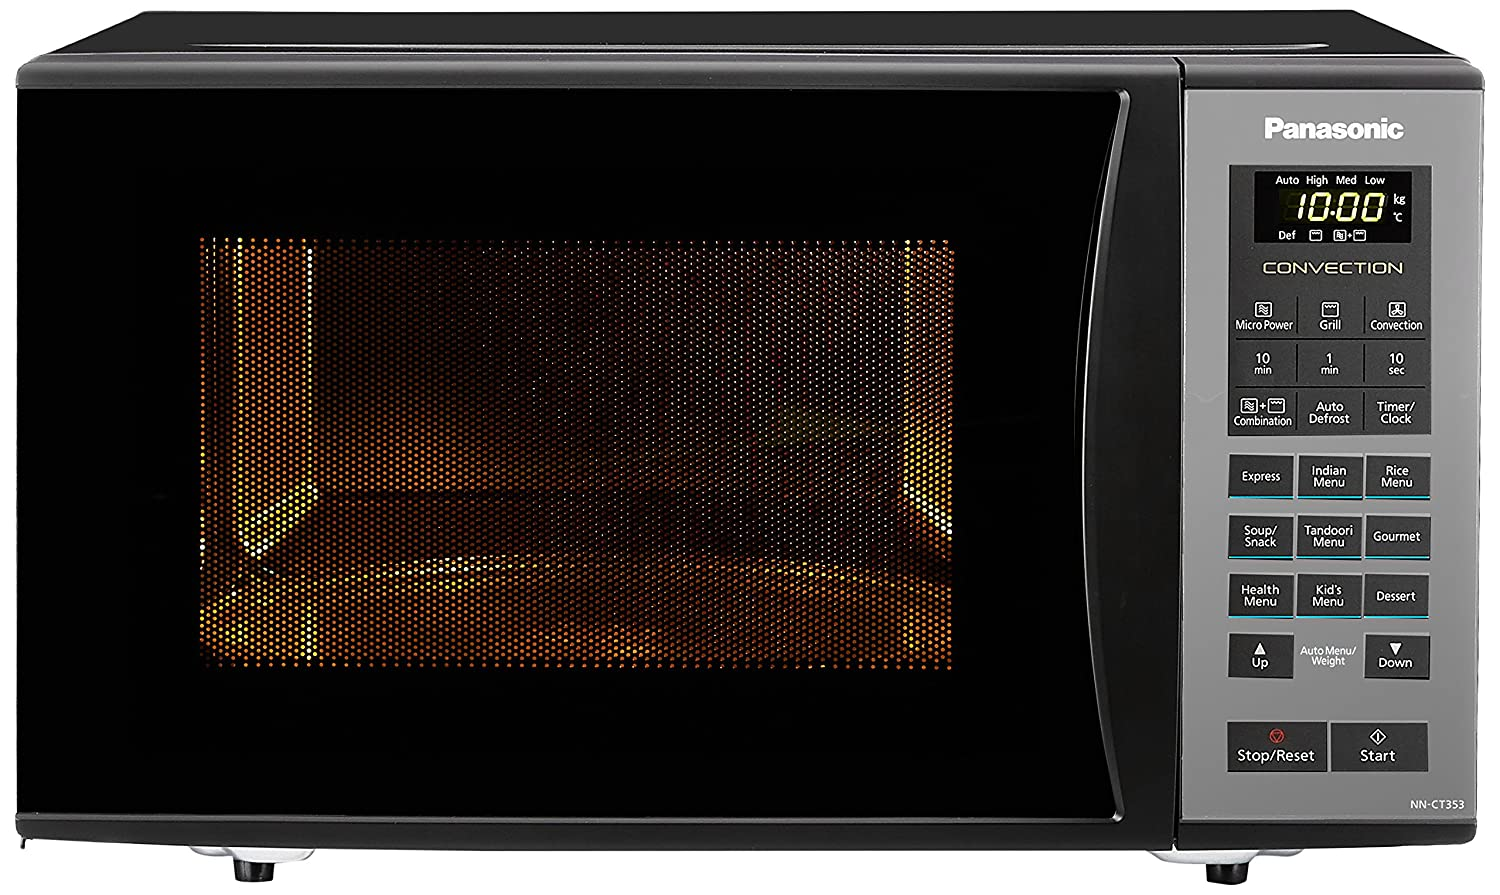 Panasonic 23 L Convection Microwave Oven Nn Ct353bfdg Black Mirror Find Wiring Diagram For Lg Home Kitchen